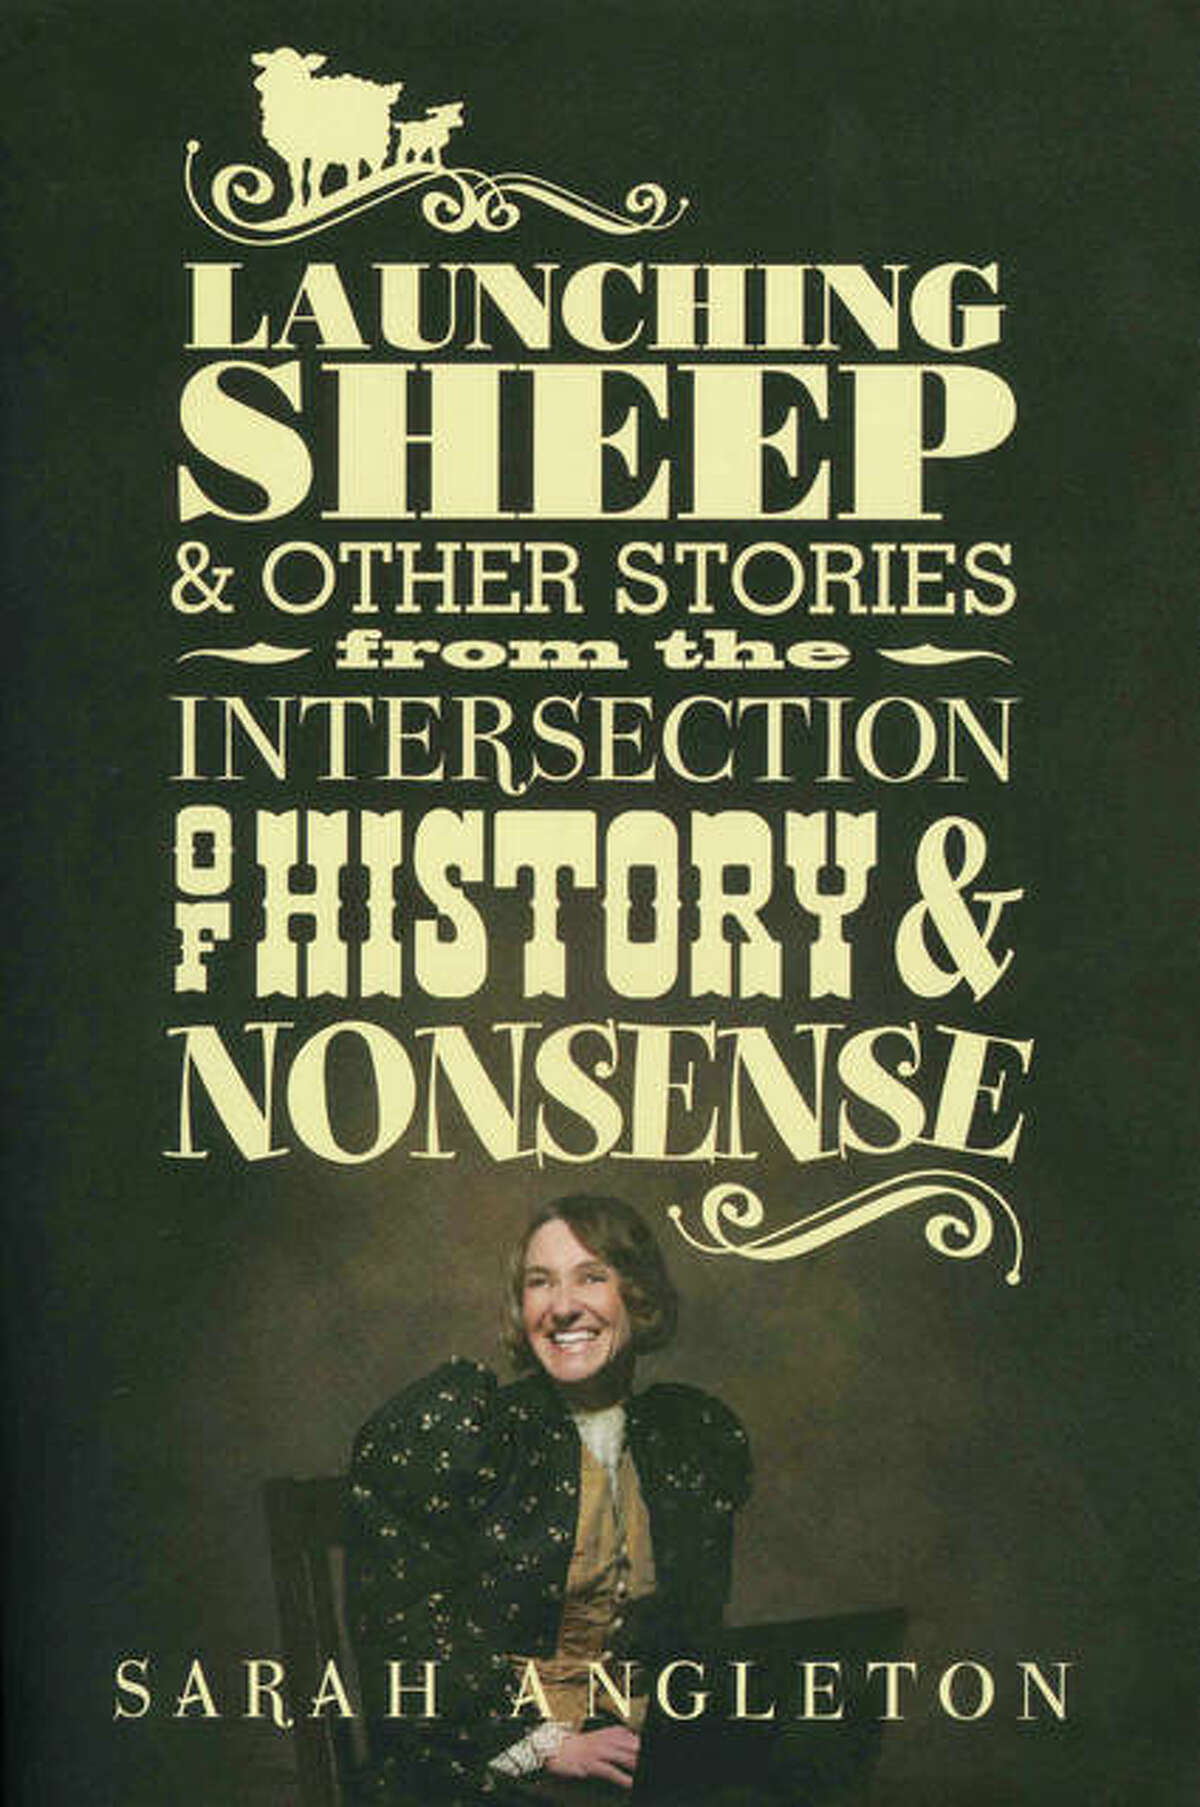 """Sarah Angleton admits she used to avoid history as a student. Now she's written a book, """"Launching Sheep and Other Stories from the Intersection of History and Nonsense,"""" filled with essays about some of the more humorous moments in time."""